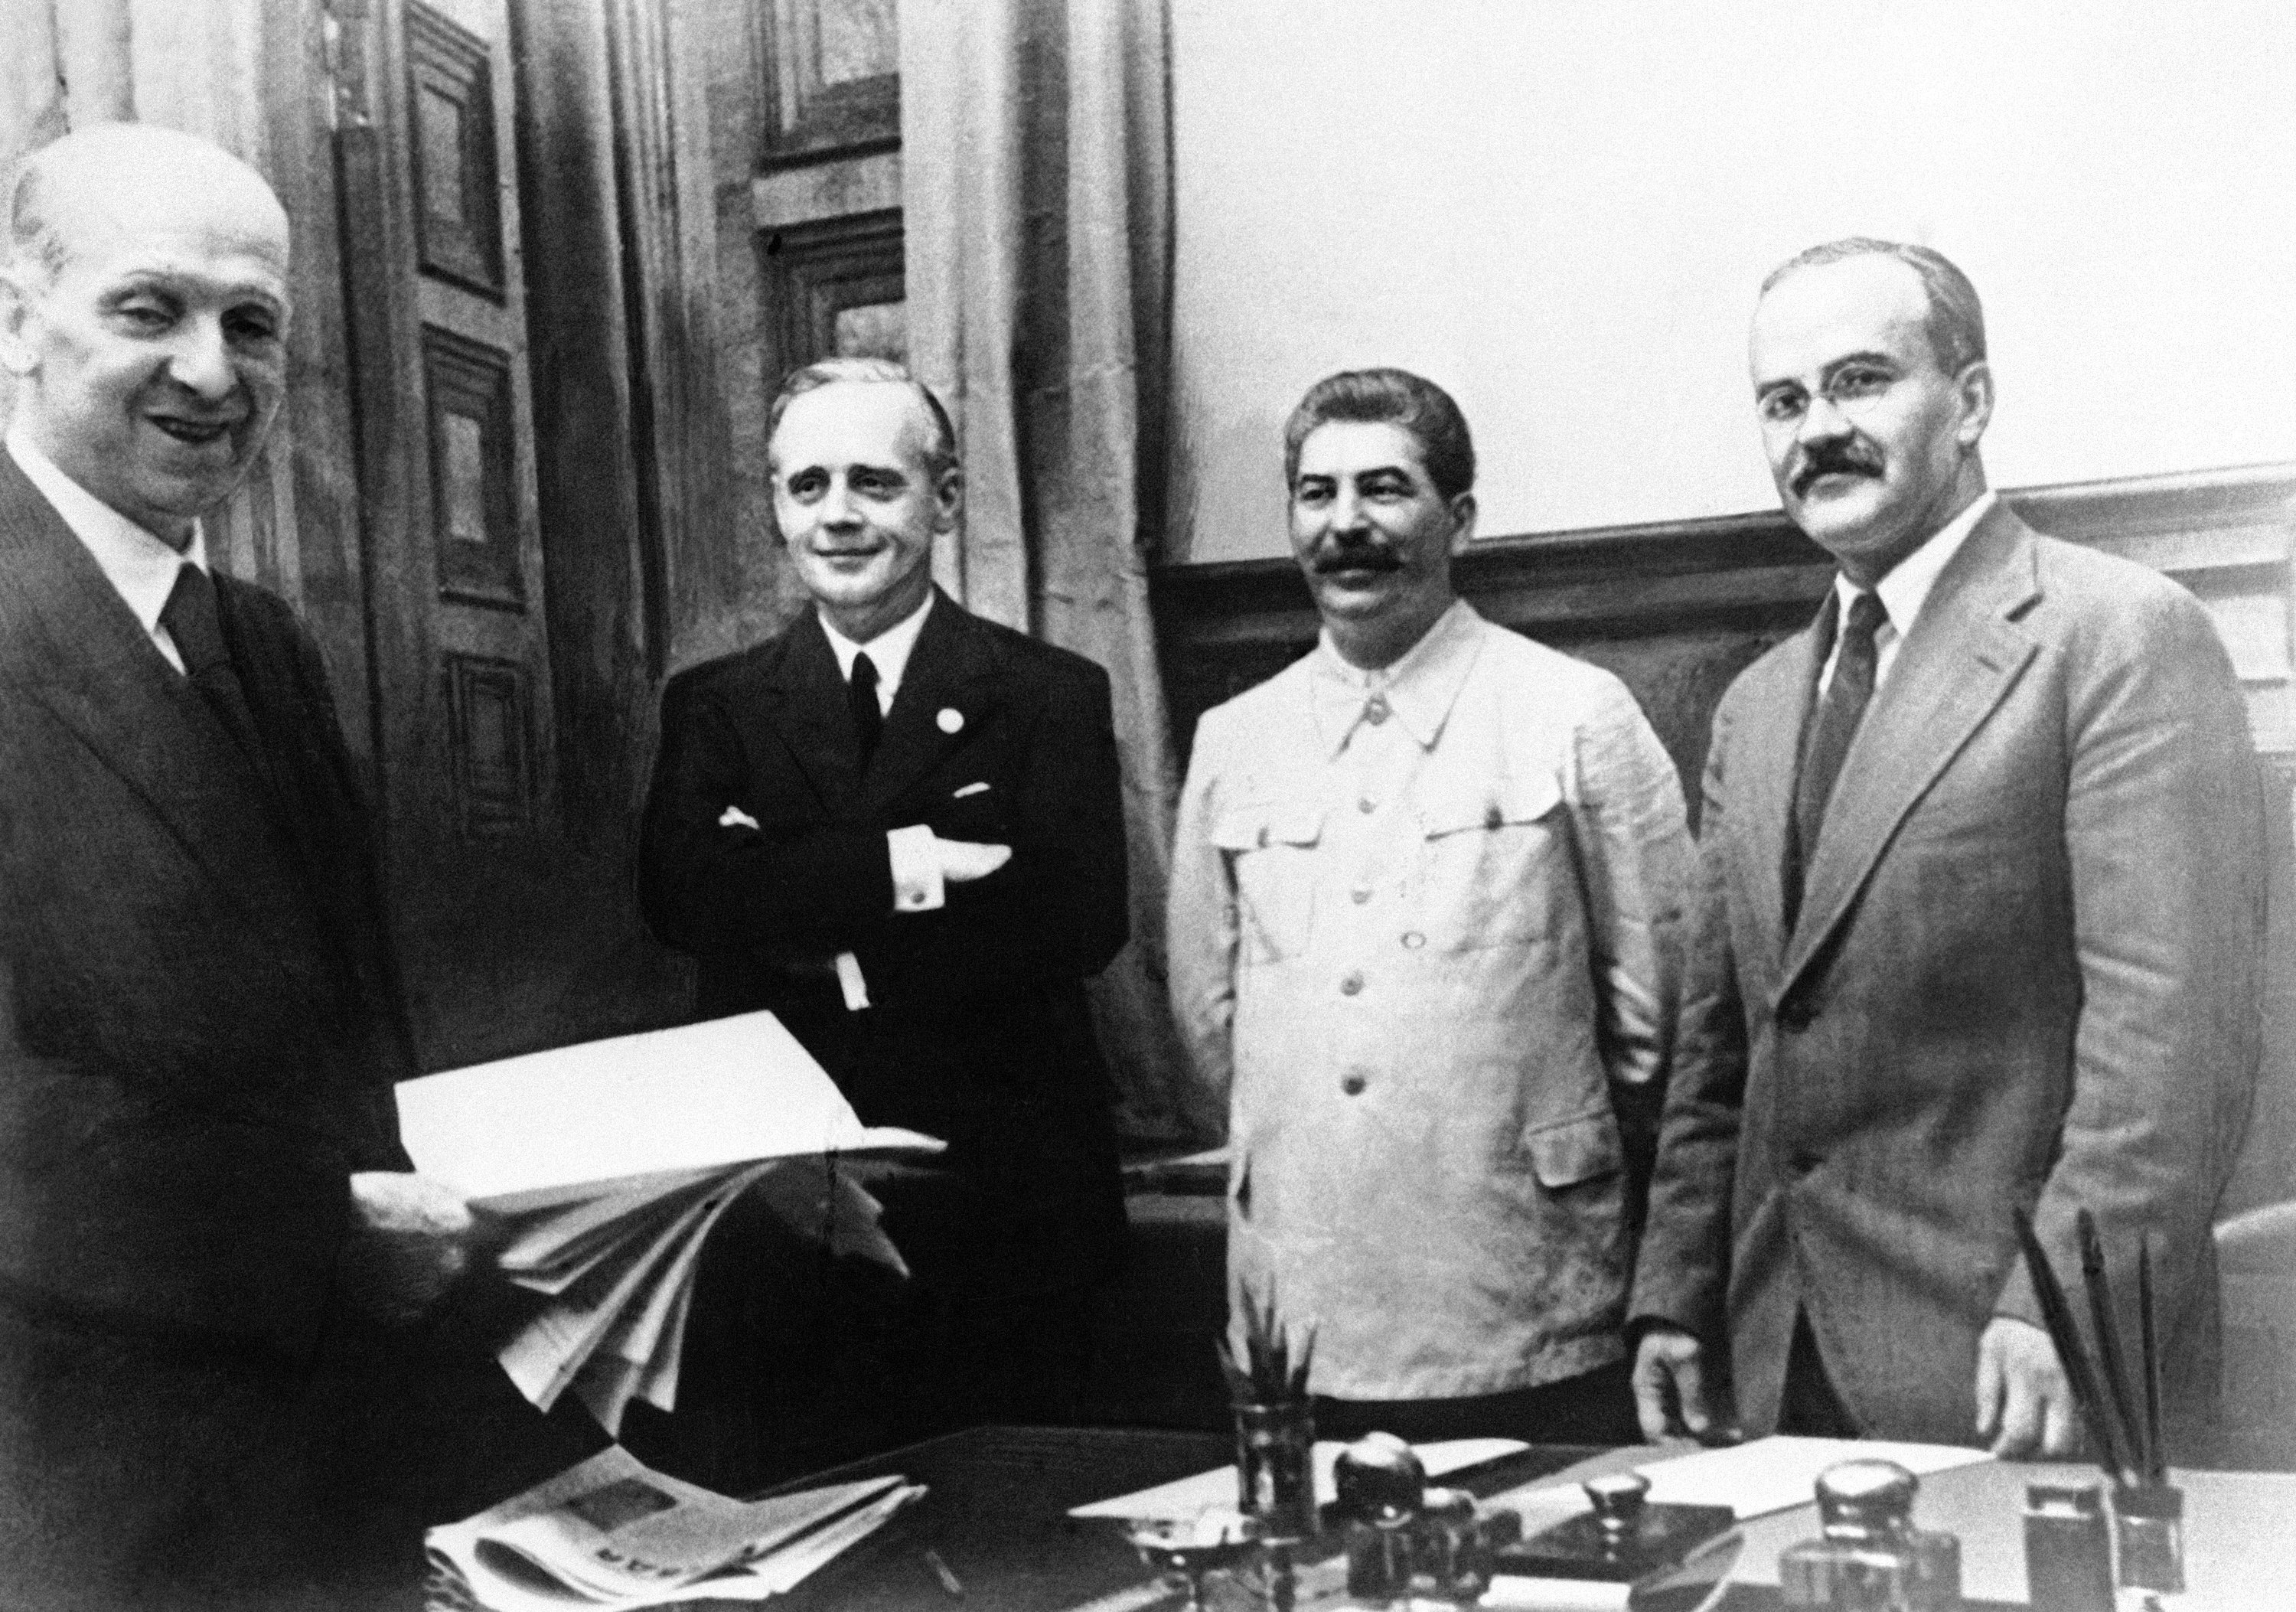 The scene in Moscow on August 23, 1939, after representatives of Nazi Germany and Soviet Russia signed their ten year Non Aggression Pact. Shown from left to right are: Freidrich Gaus, Joachim von Ribbentrop,Joseph Stalin , and Vyacheslav Molotov. Molotov signed for Russia and von Ribbentrop signed for Germany